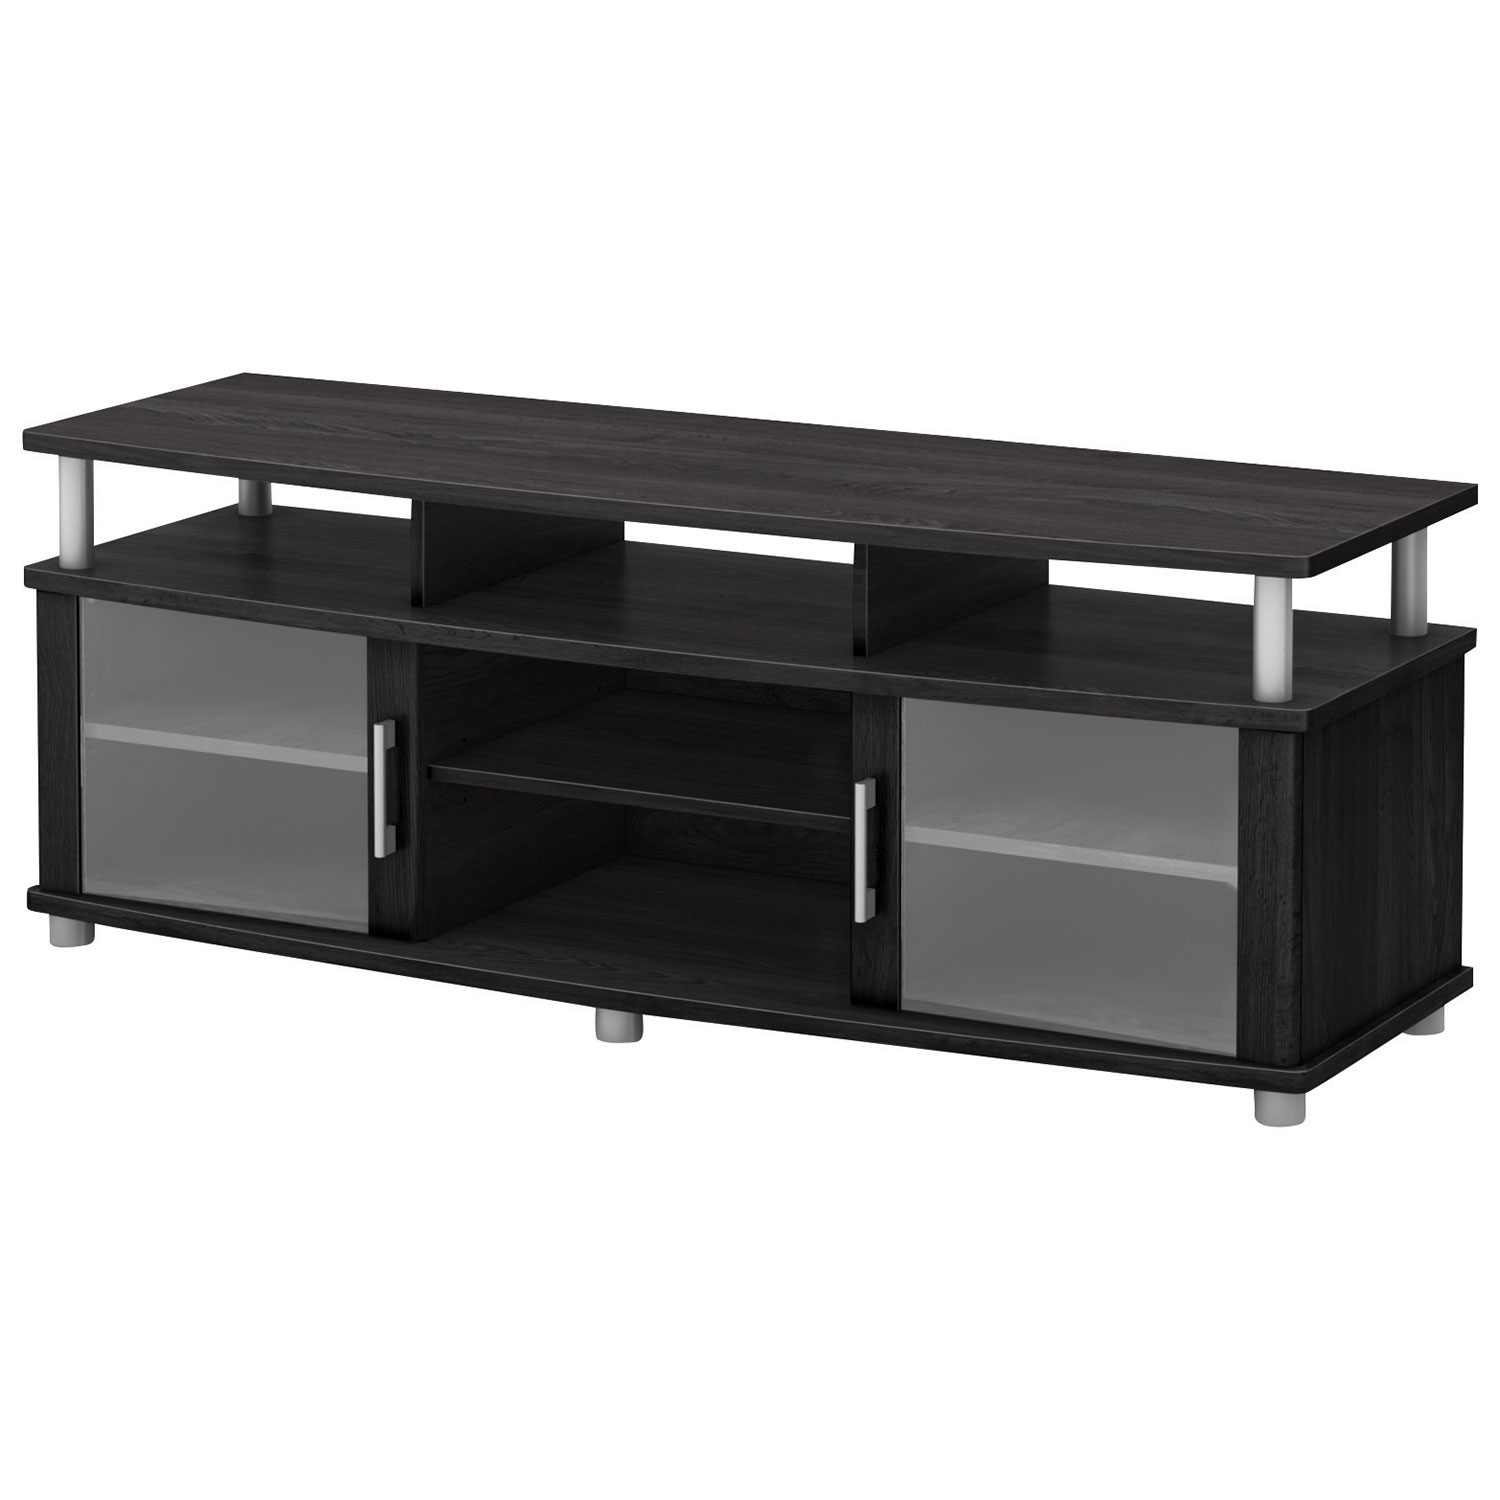 Tv Stand Shop Tv Stands Fireplace Corner Tv Stands Best Buy Canada